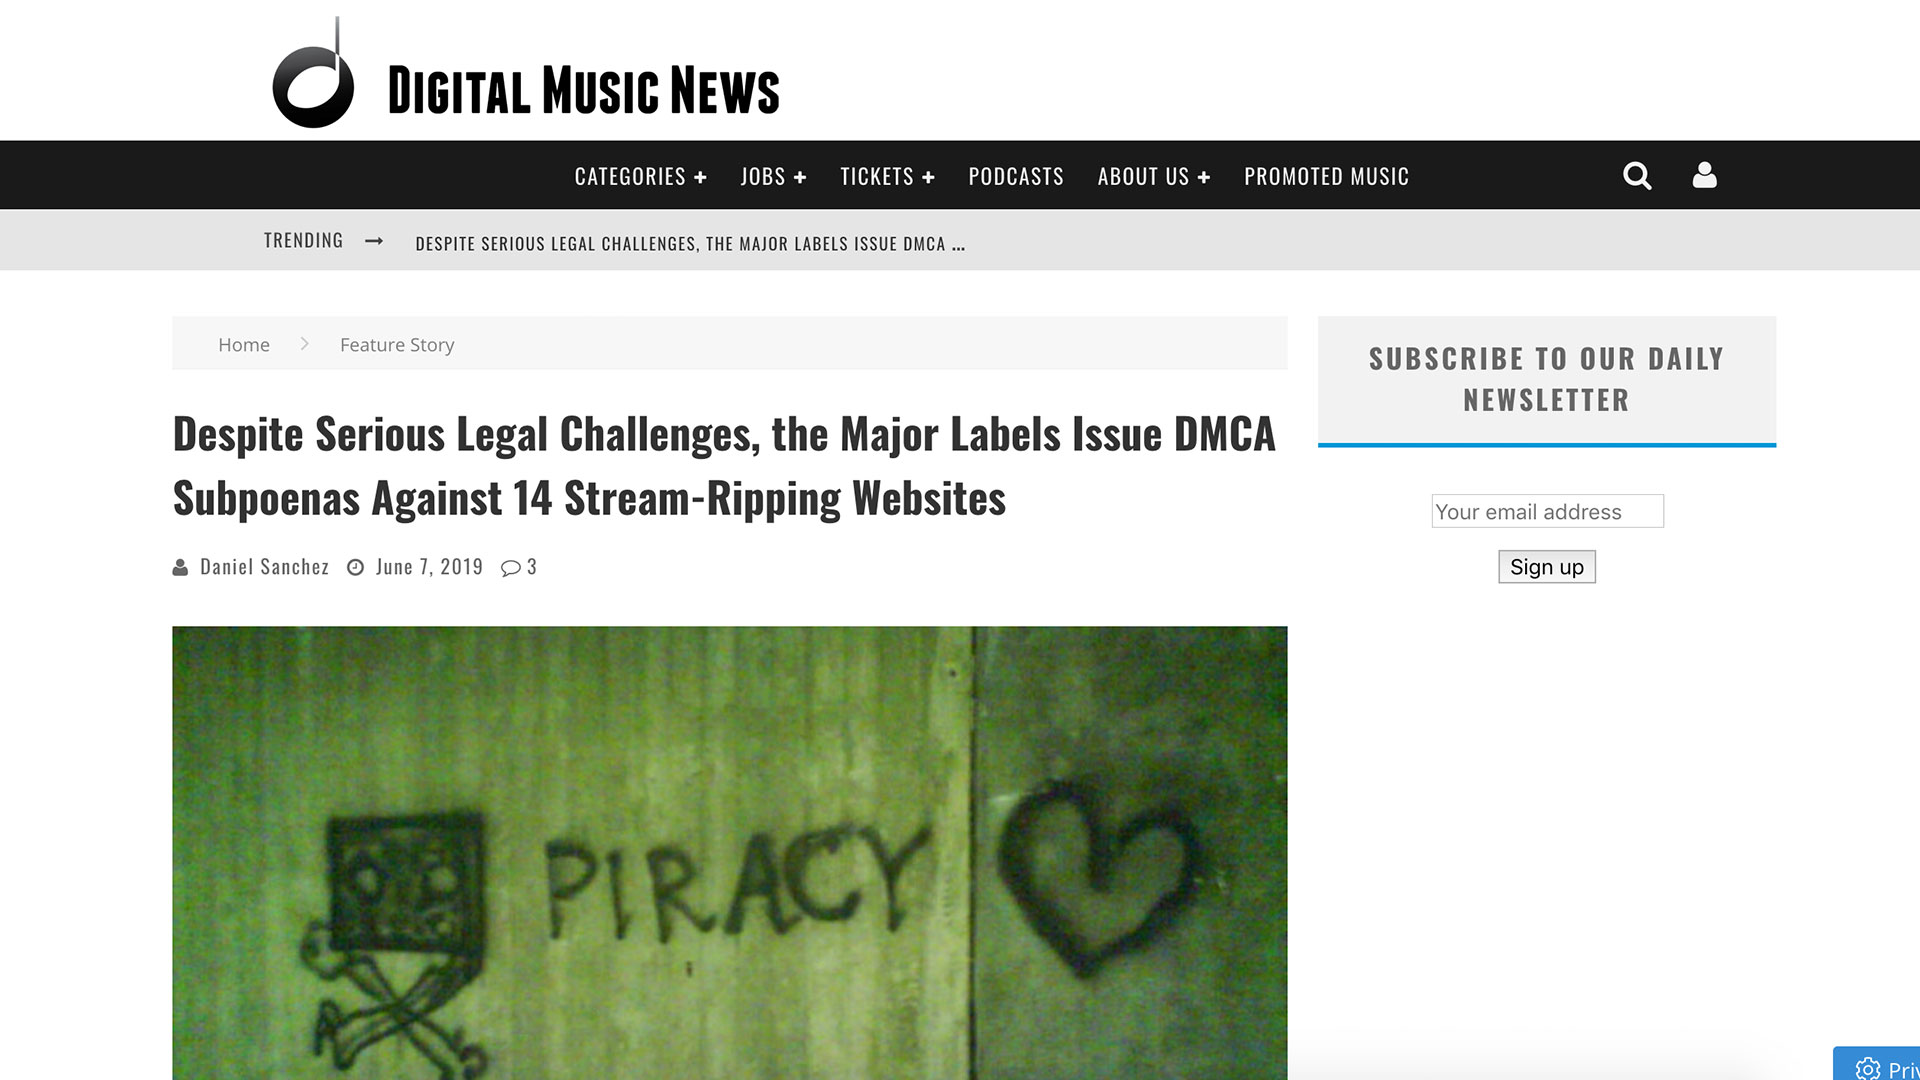 Fairness Rocks News Despite Serious Legal Challenges, the Major Labels Issue DMCA Subpoenas Against 14 Stream-Ripping Websites